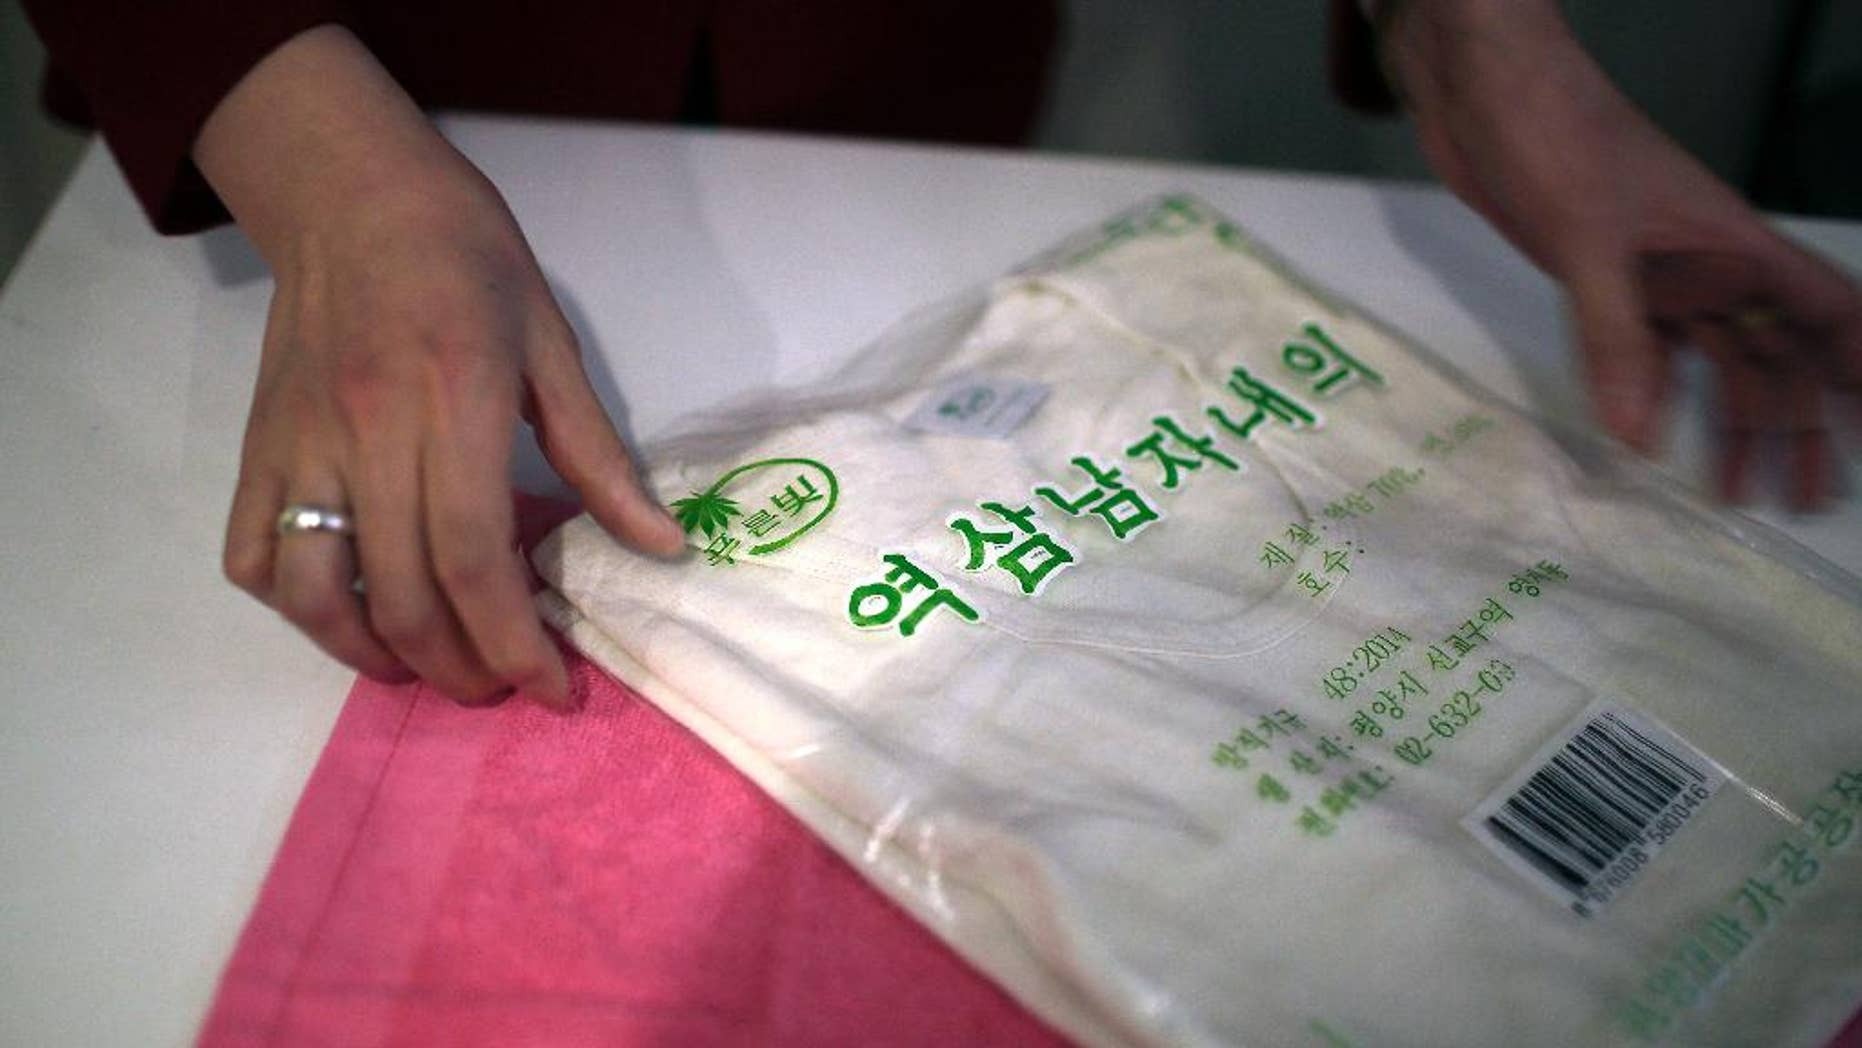 A saleswoman shows off a locally produced t-shirt and towel made out of hemp in Pyongyang. Hemp is, in fact, grown in North Korea with official sanction.